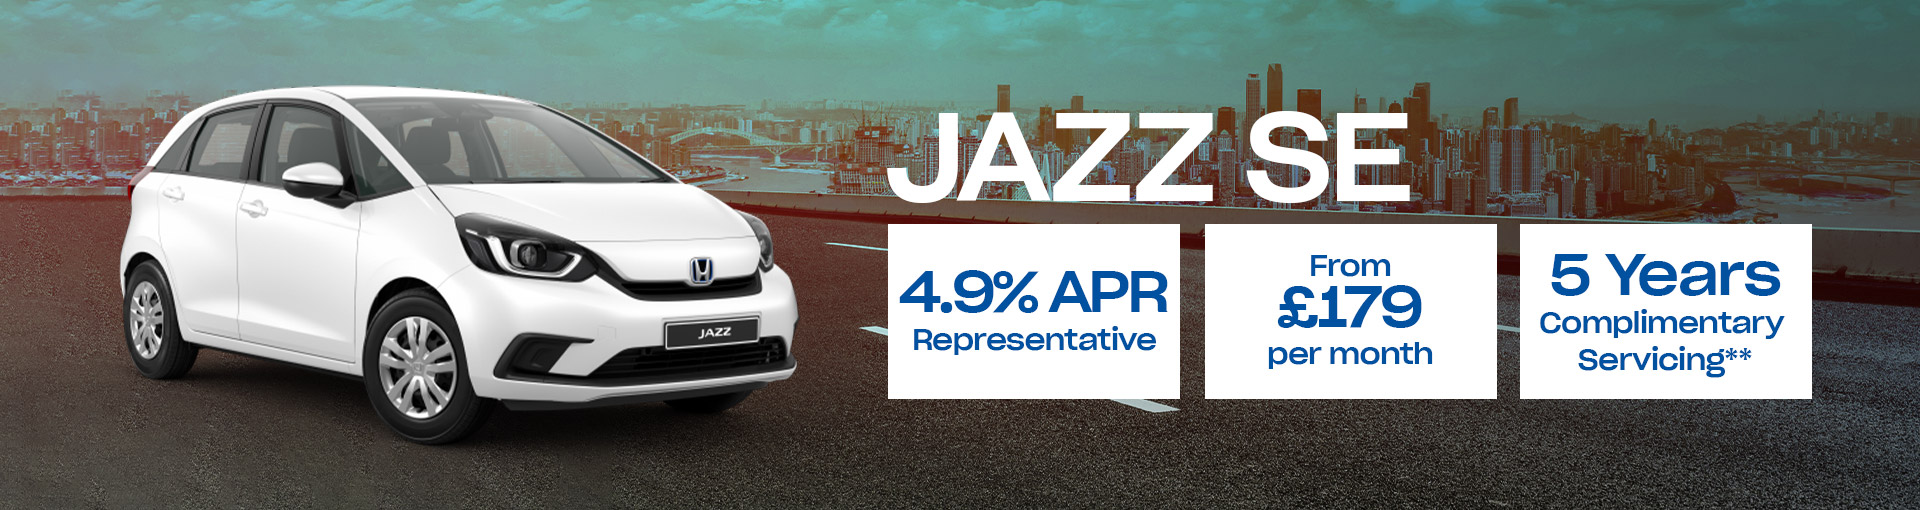 Jazz EX NAVI New Car Offer